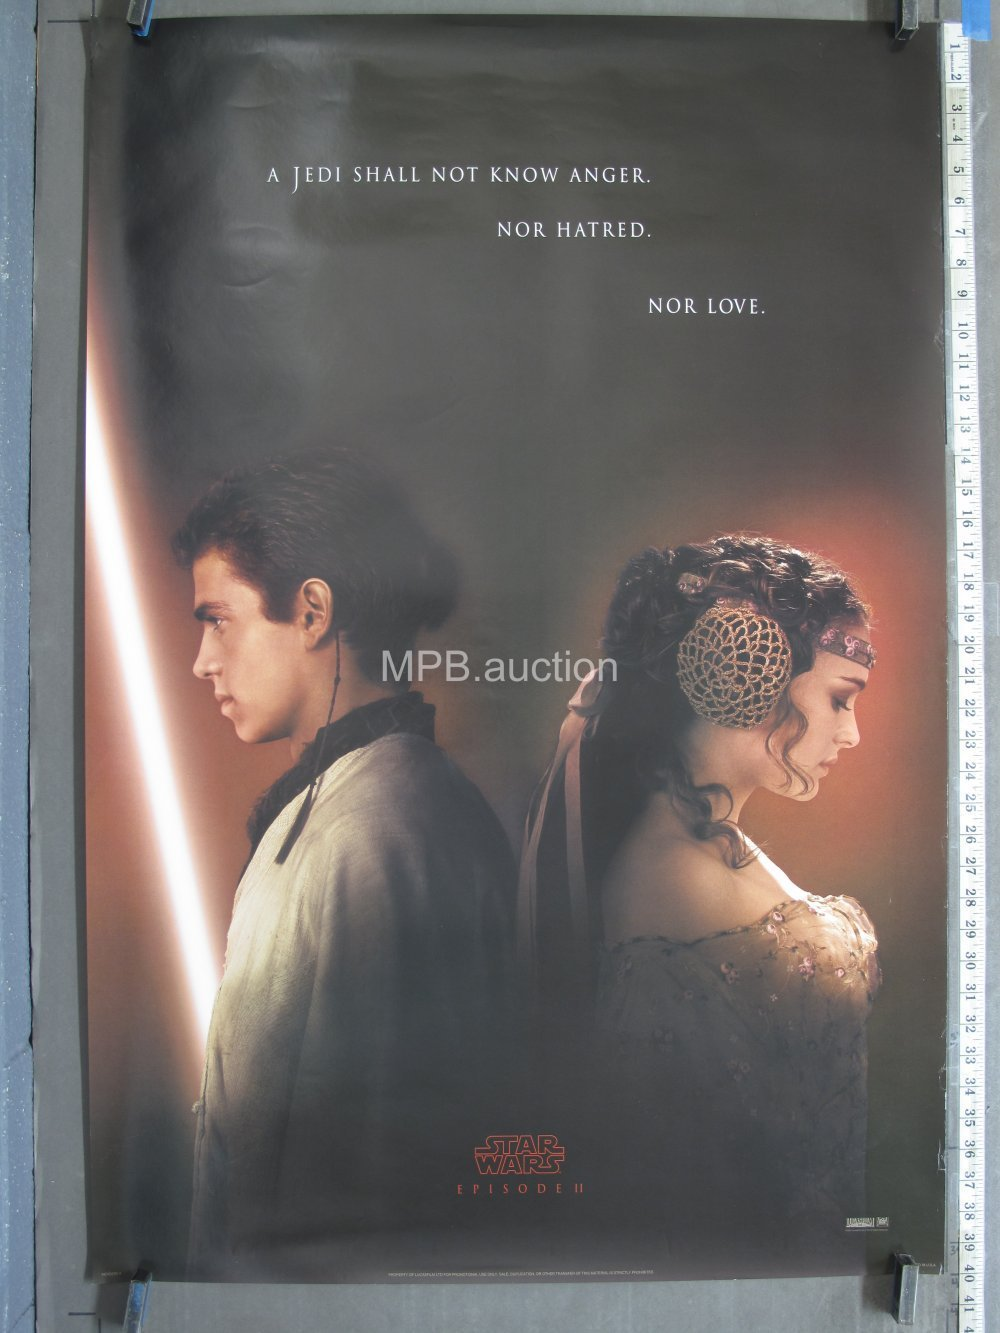 24 x 36 inches 2002 Vintage Star Wars Attack of the Clones Poster Episode 2